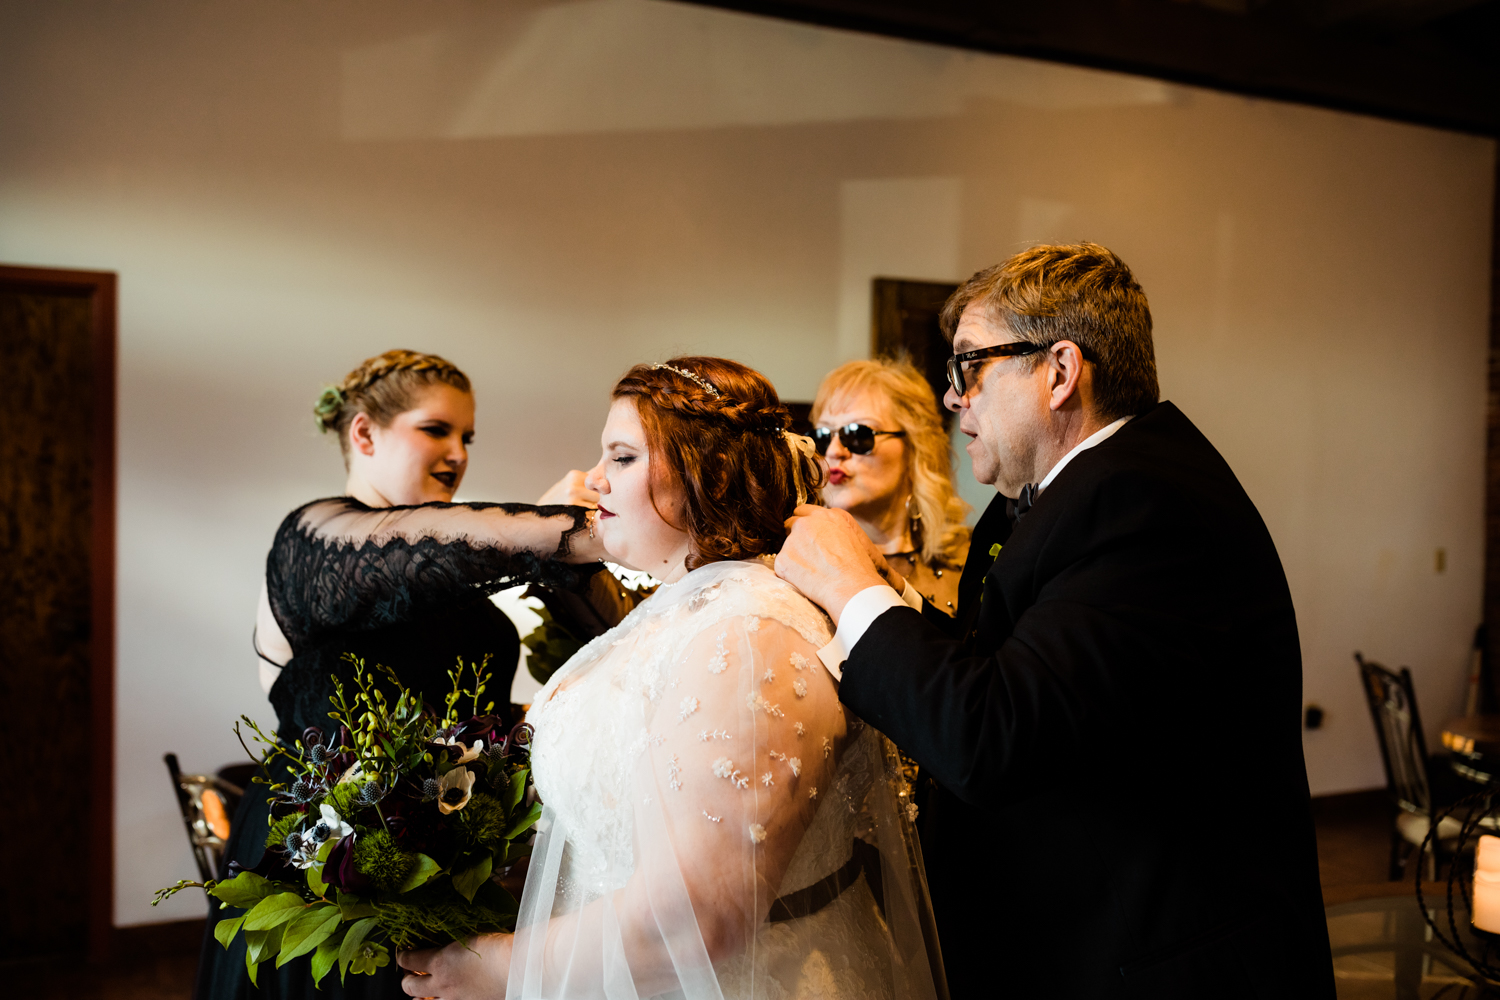 Cape-wearing bride's family helping put on pearl necklace on wedding day